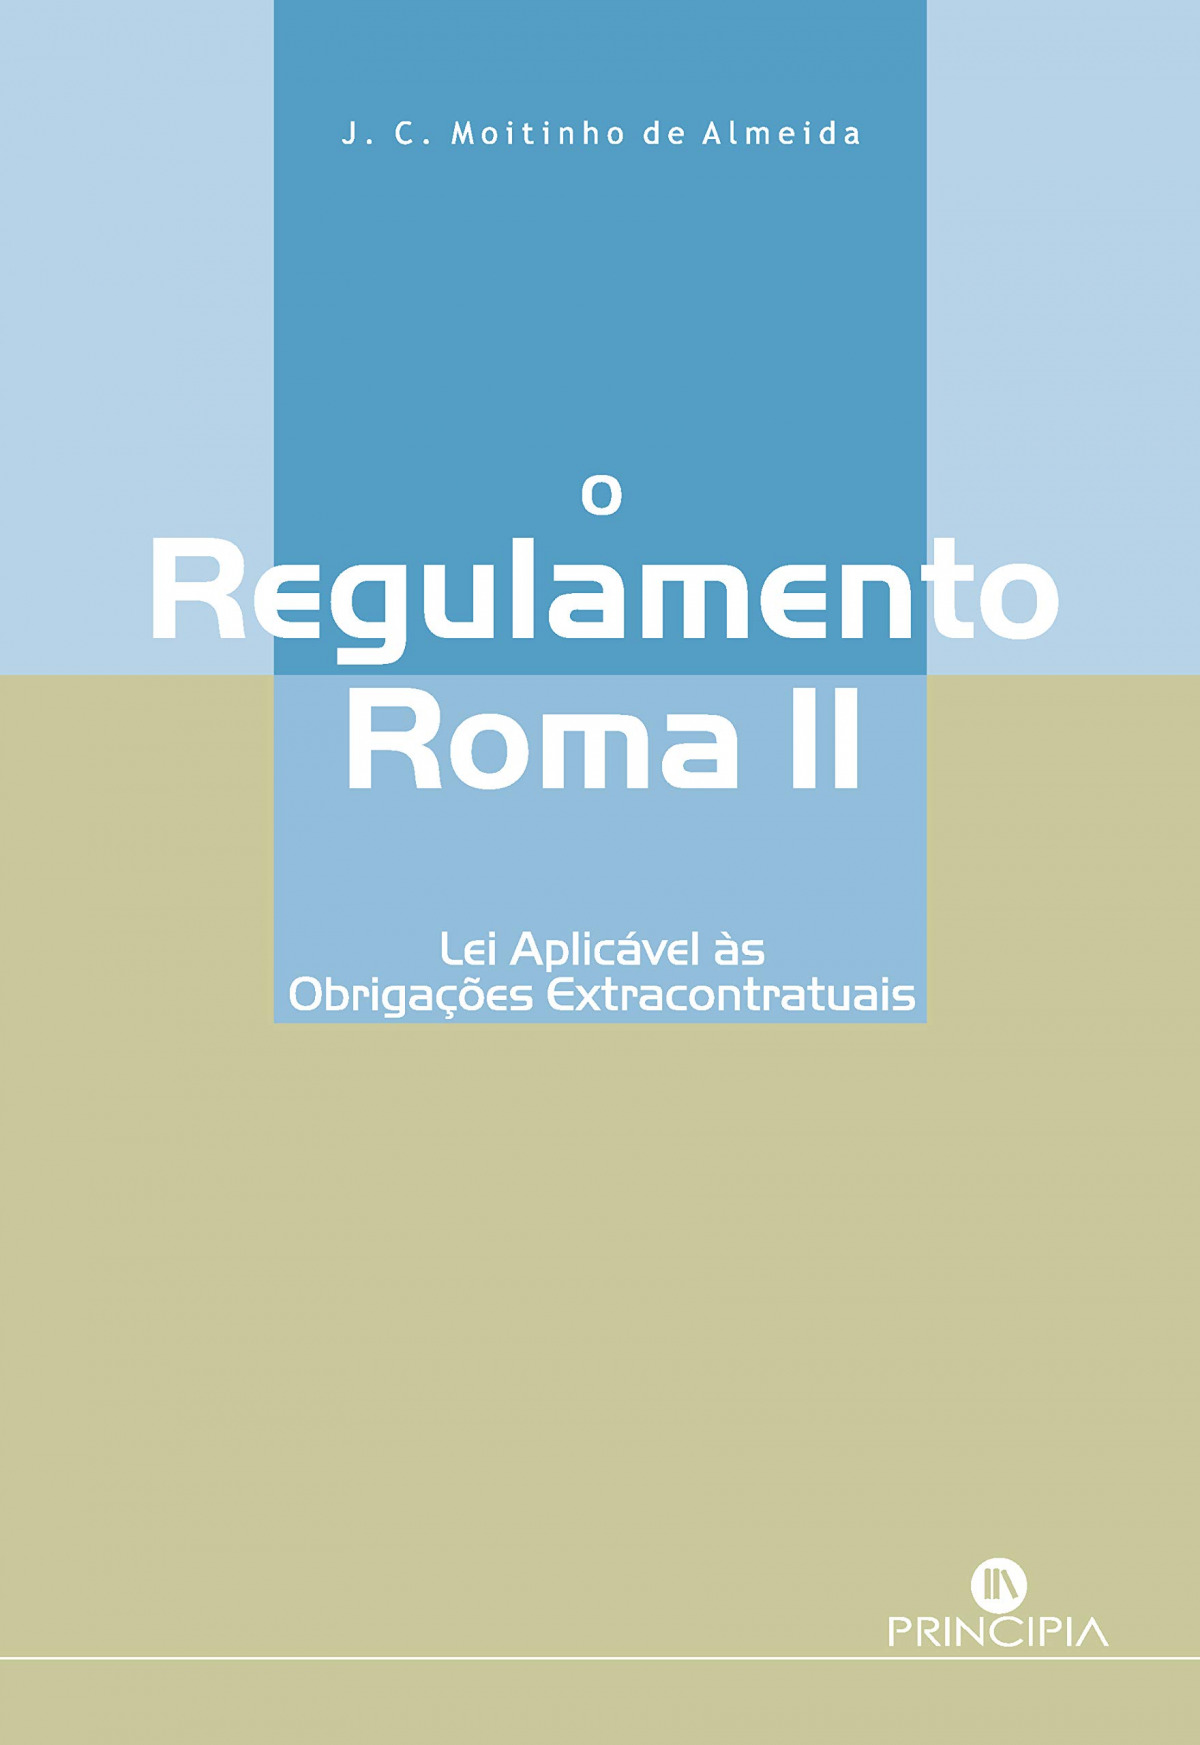 O regulamento Roma II